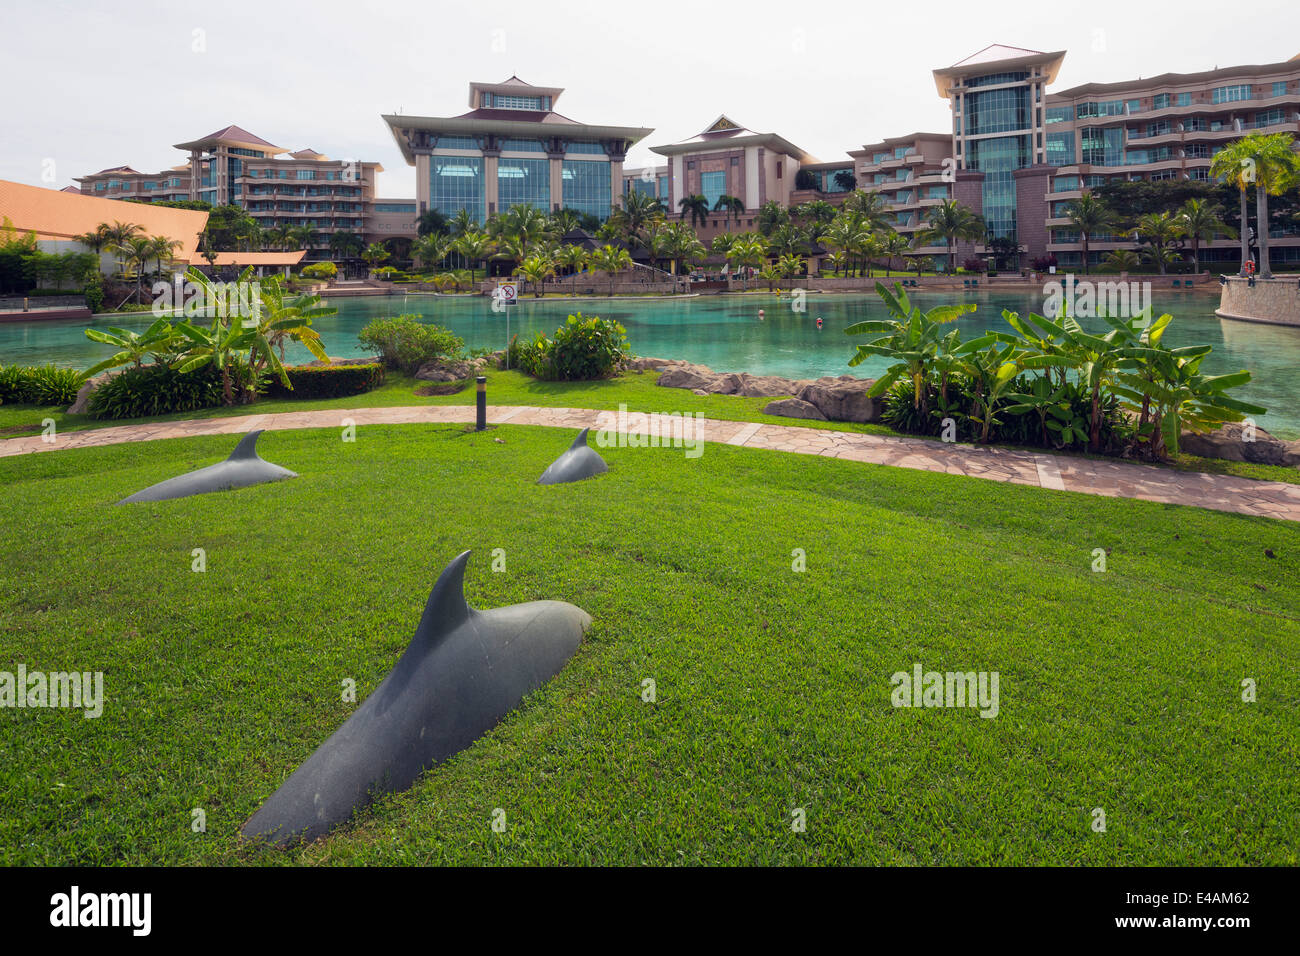 South East Asia, Kingdom of Brunei, Empire Hotel and Country Club - Stock Image